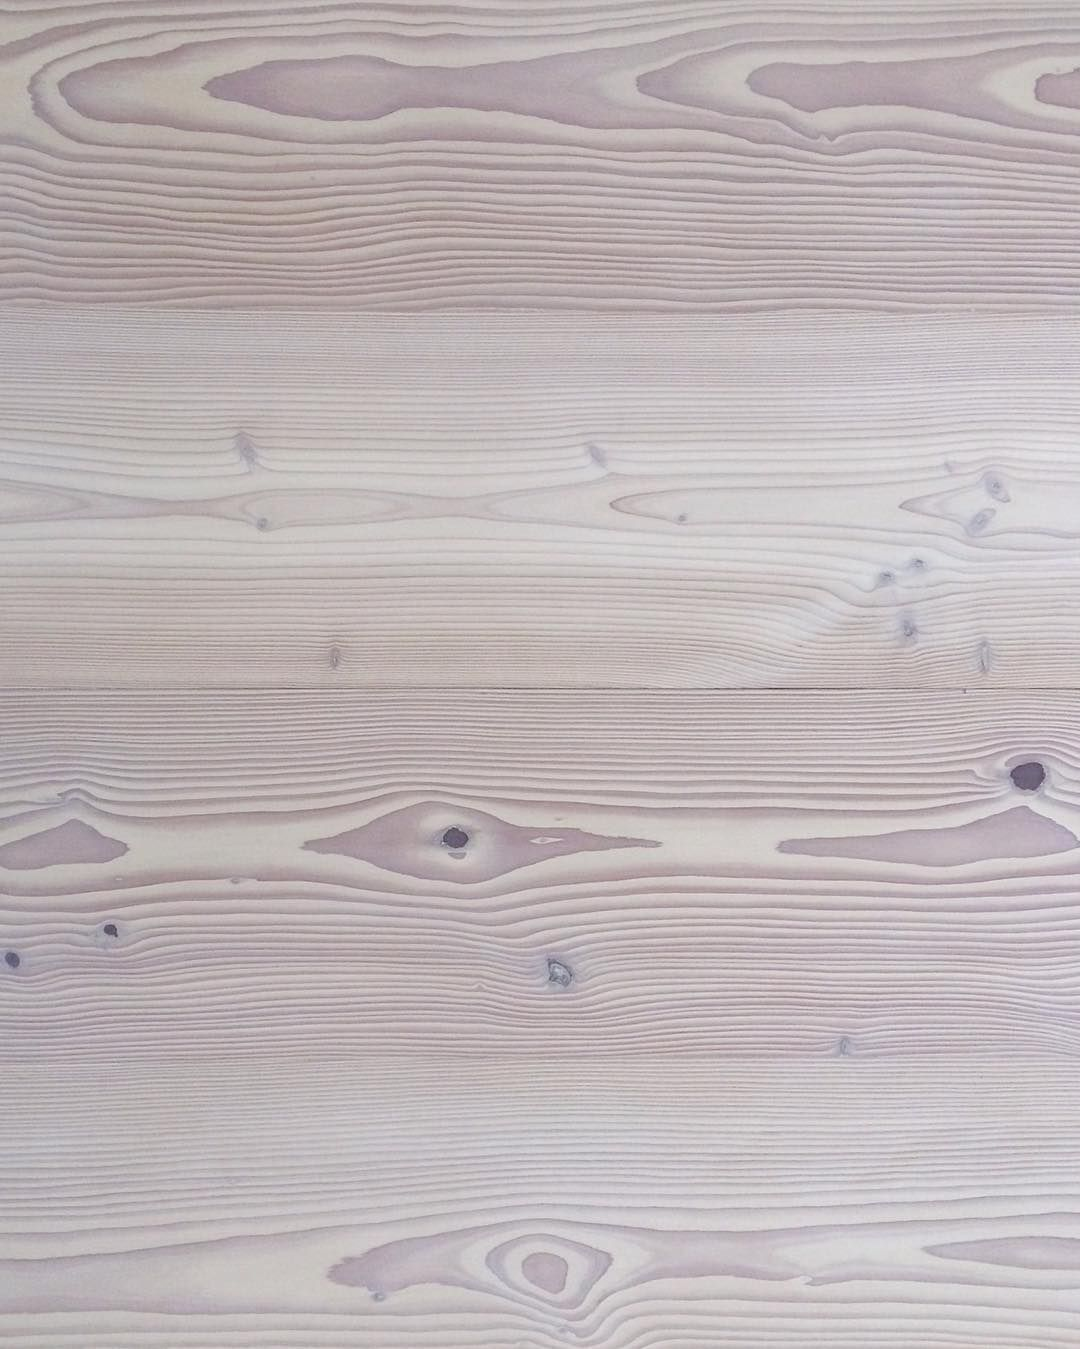 Douglas Fir Lye Treated Brushed White Oil Floorboards Natural Wood Floors By Mafi Made In Austria Douglas Fir Flooring Flooring Douglas Fir